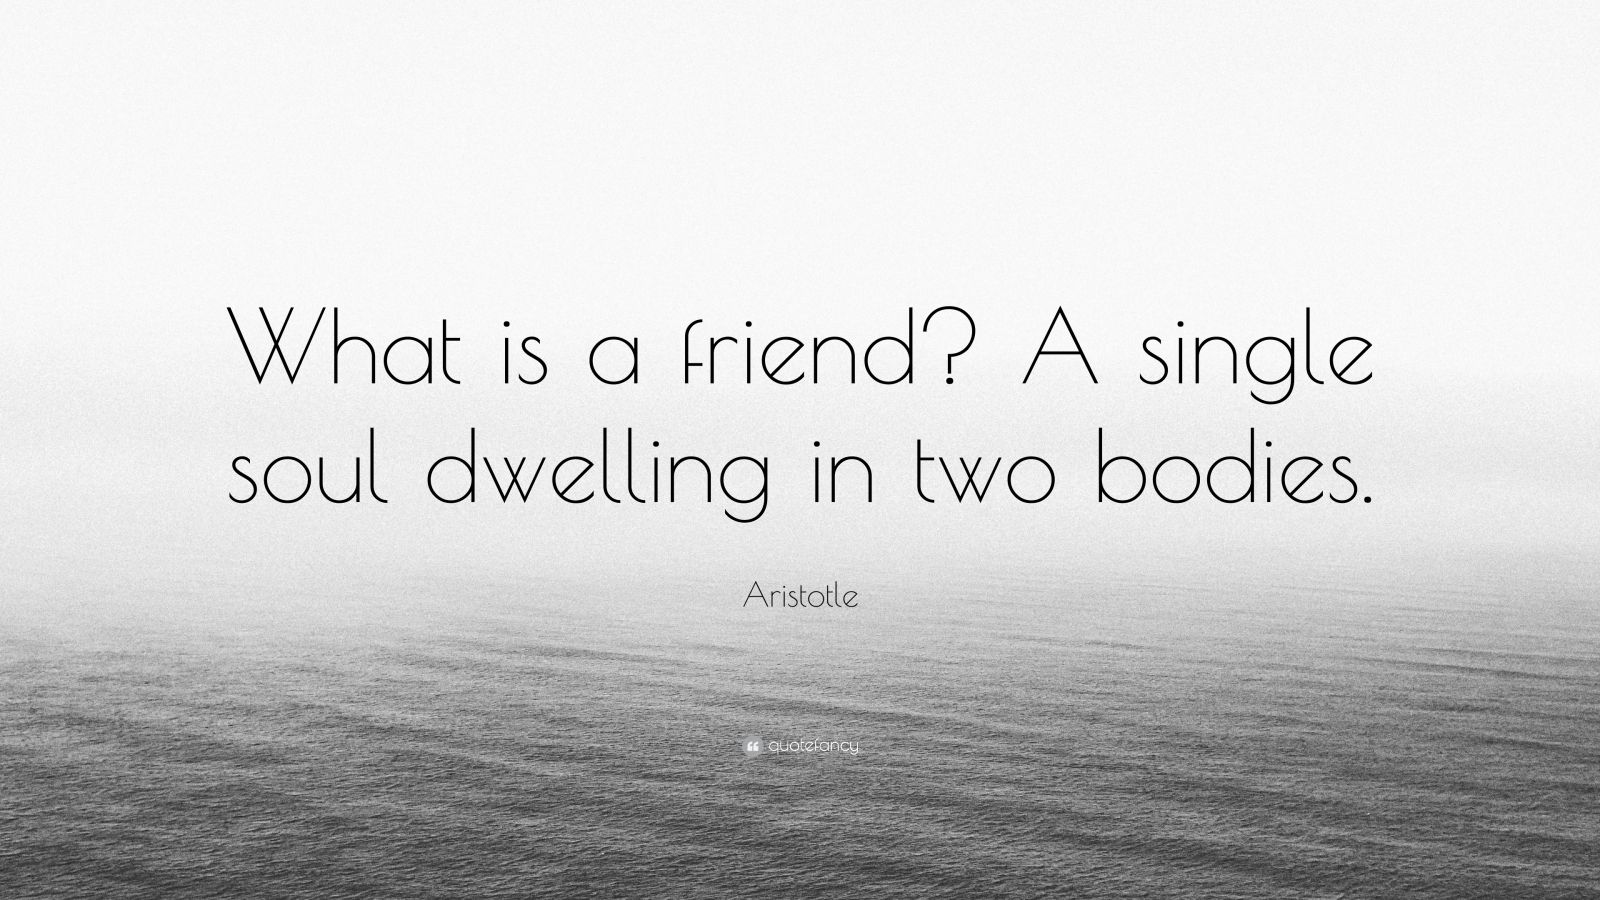 friendship is a single soul dwelling in two bodies essay Report Abuse